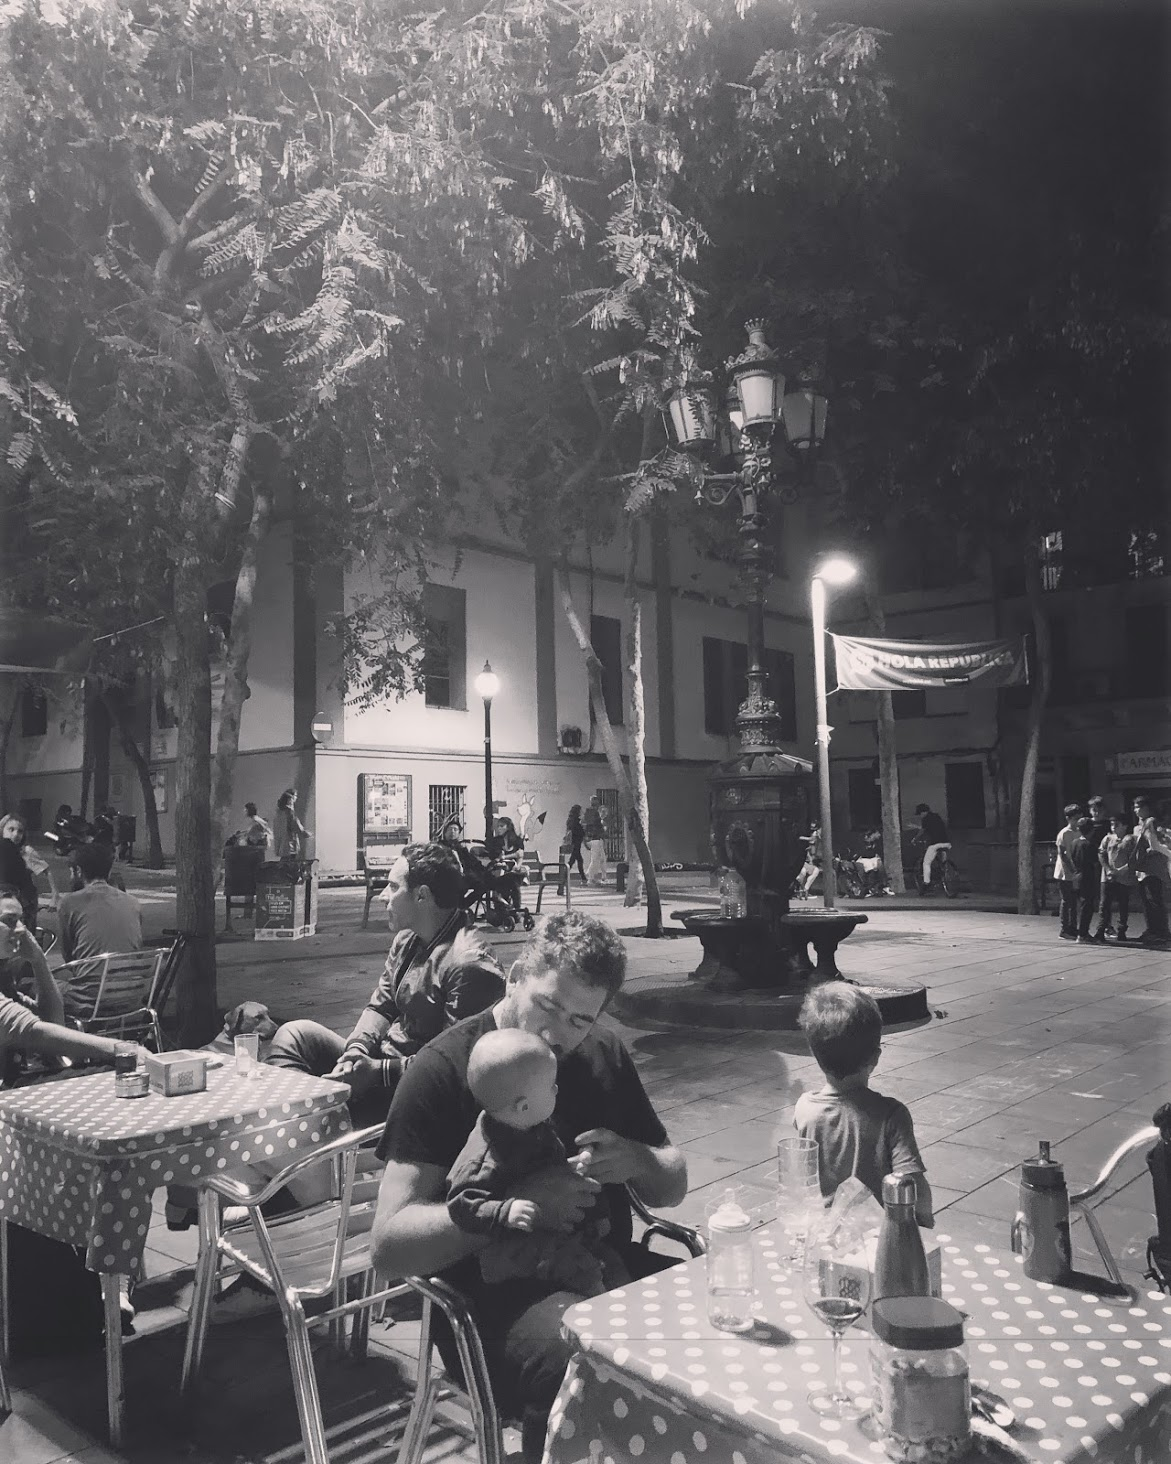 Warm evening in a plaza in our neighborhood for drinks and tapas before dinner.